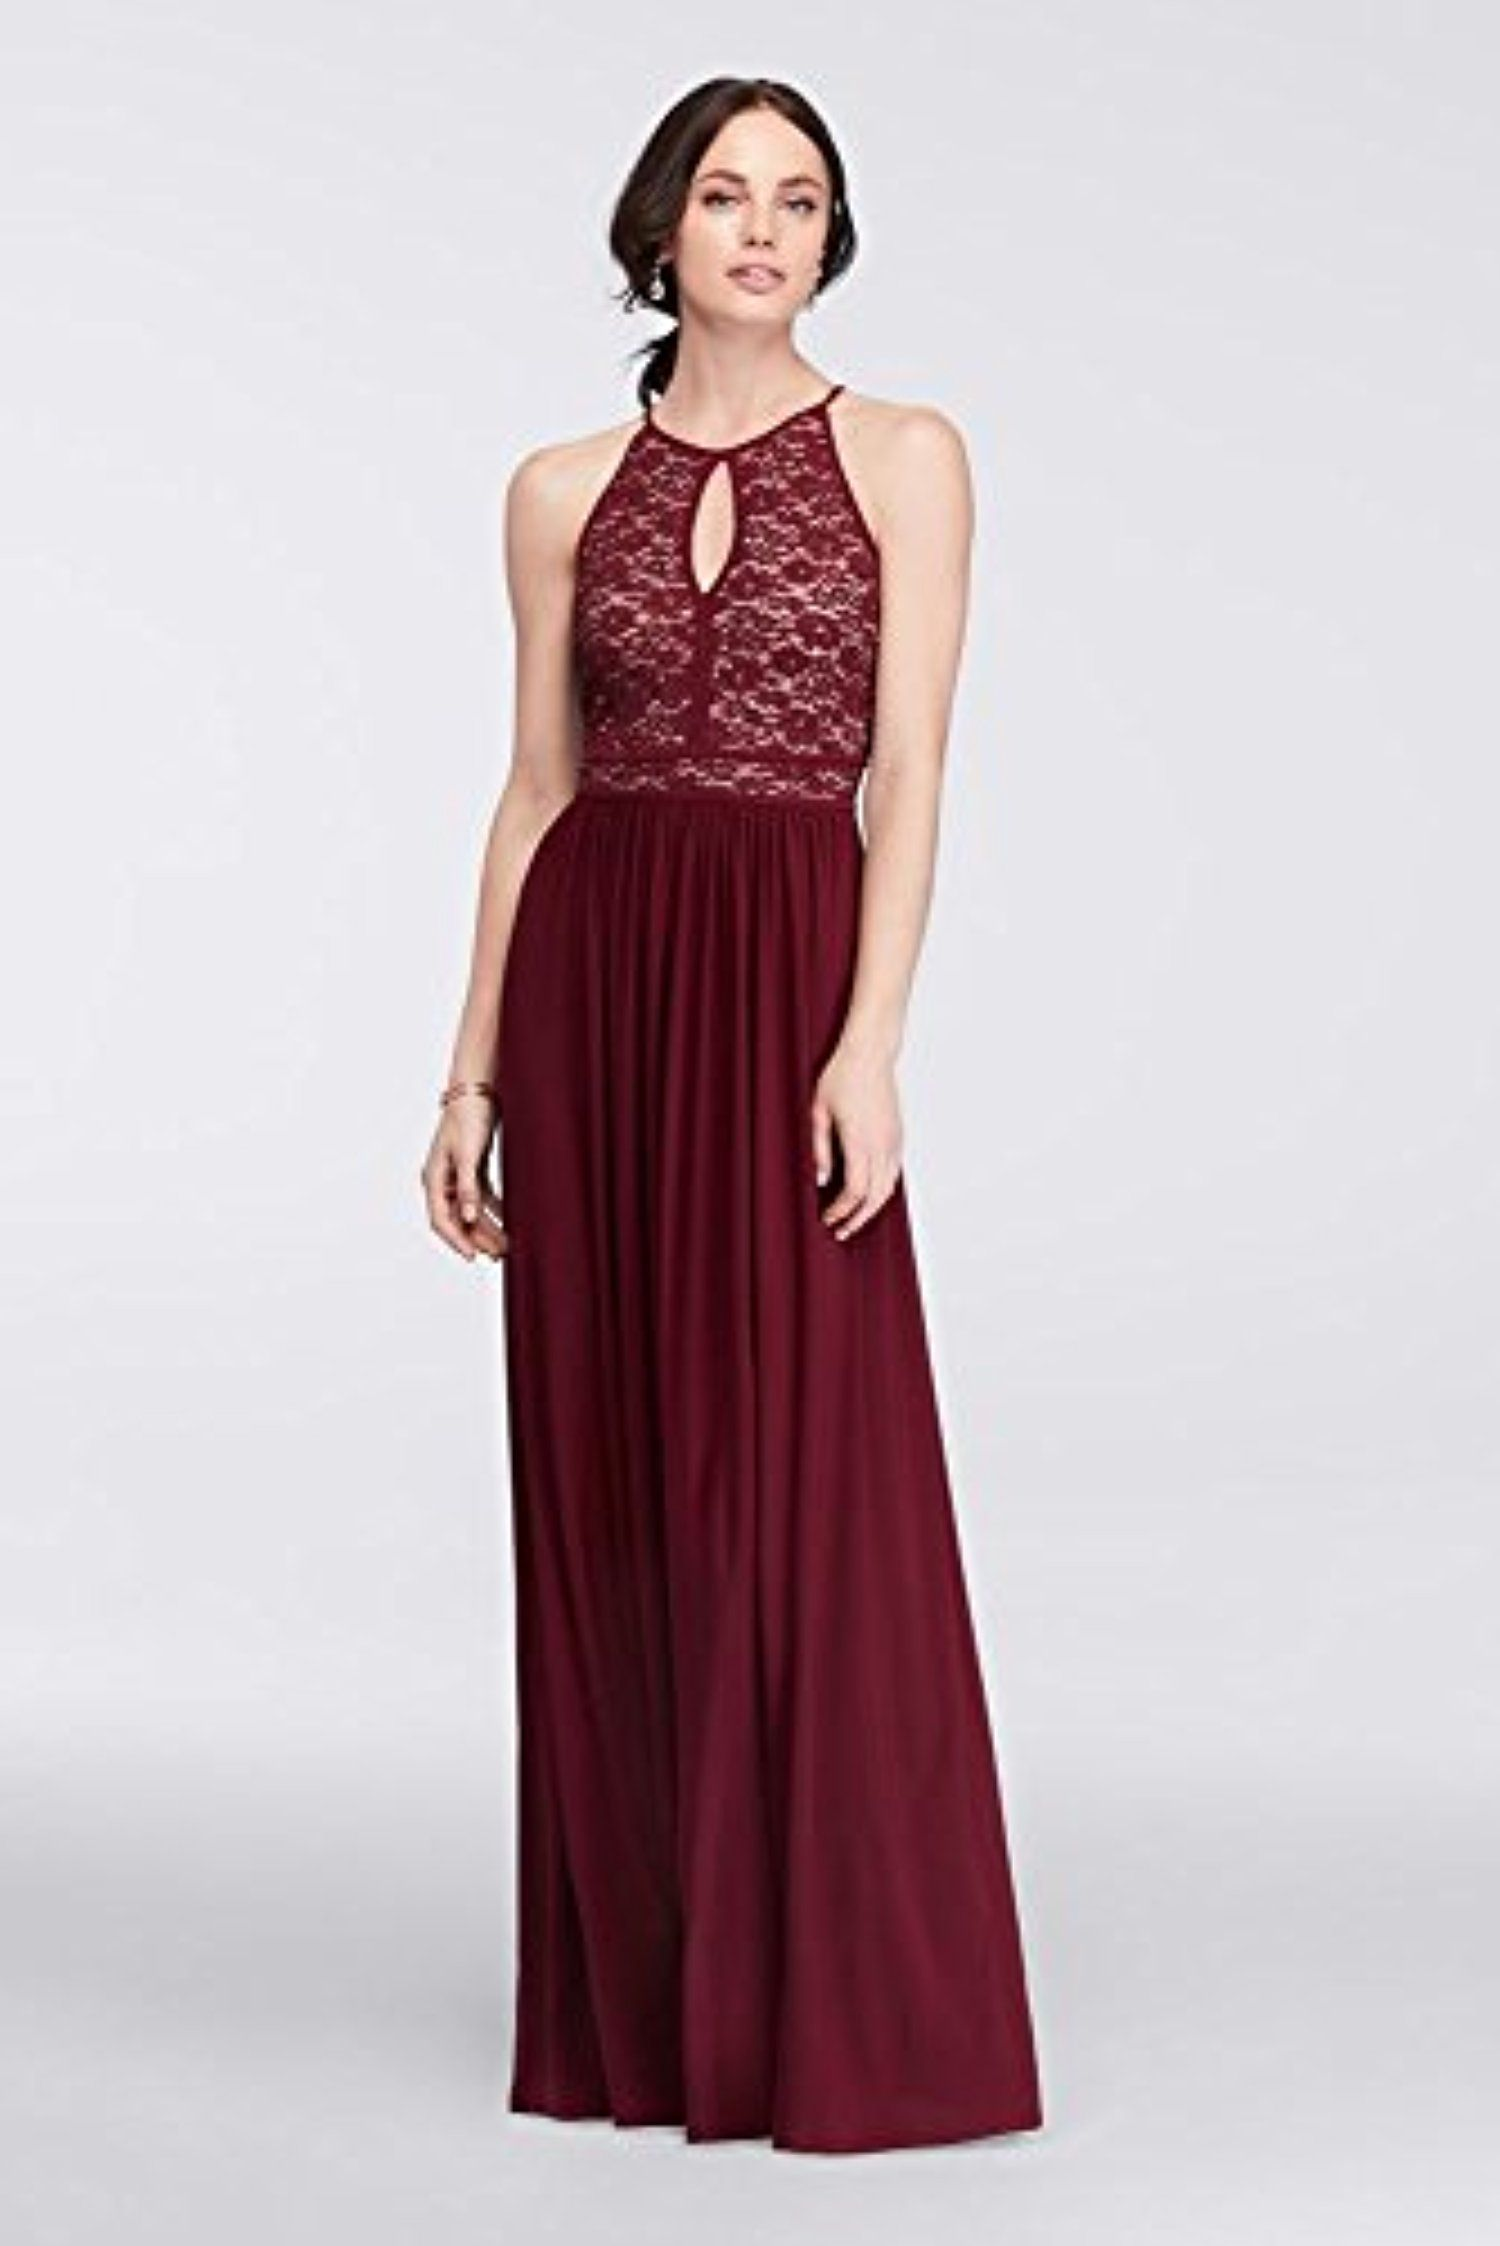 57f1599bdb3 Lace Keyhole Tie Back Halter Dress Style 12089, Wine, 12 -- Awesome  products selected by Anna Churchill